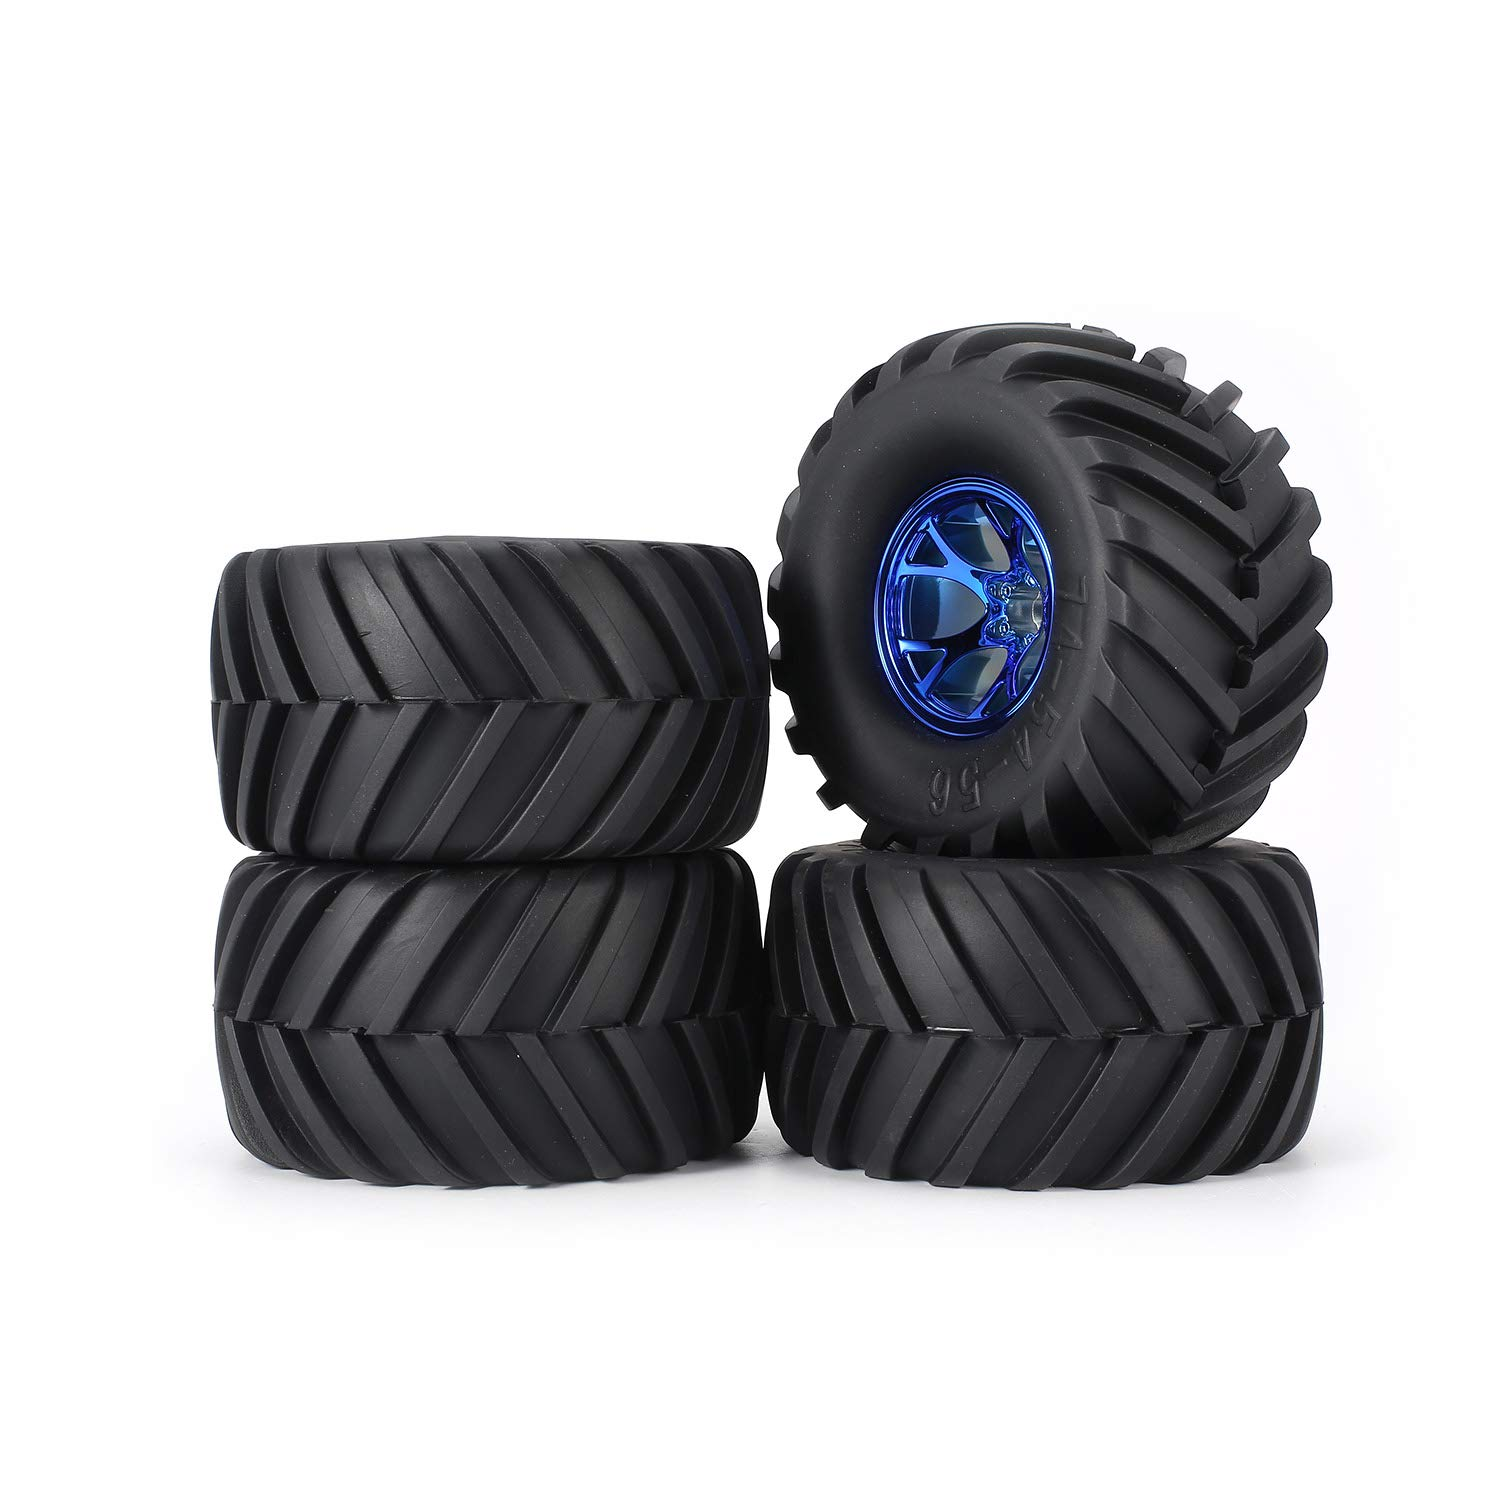 bluee RC Tyre AUSTAR 4pcs AX-3003 130mm Rim Rubber Tyre Tire Wheel Plastic Hub for 1 10 RC Big Feet Model HSP HPI Beadlock Spare Parts